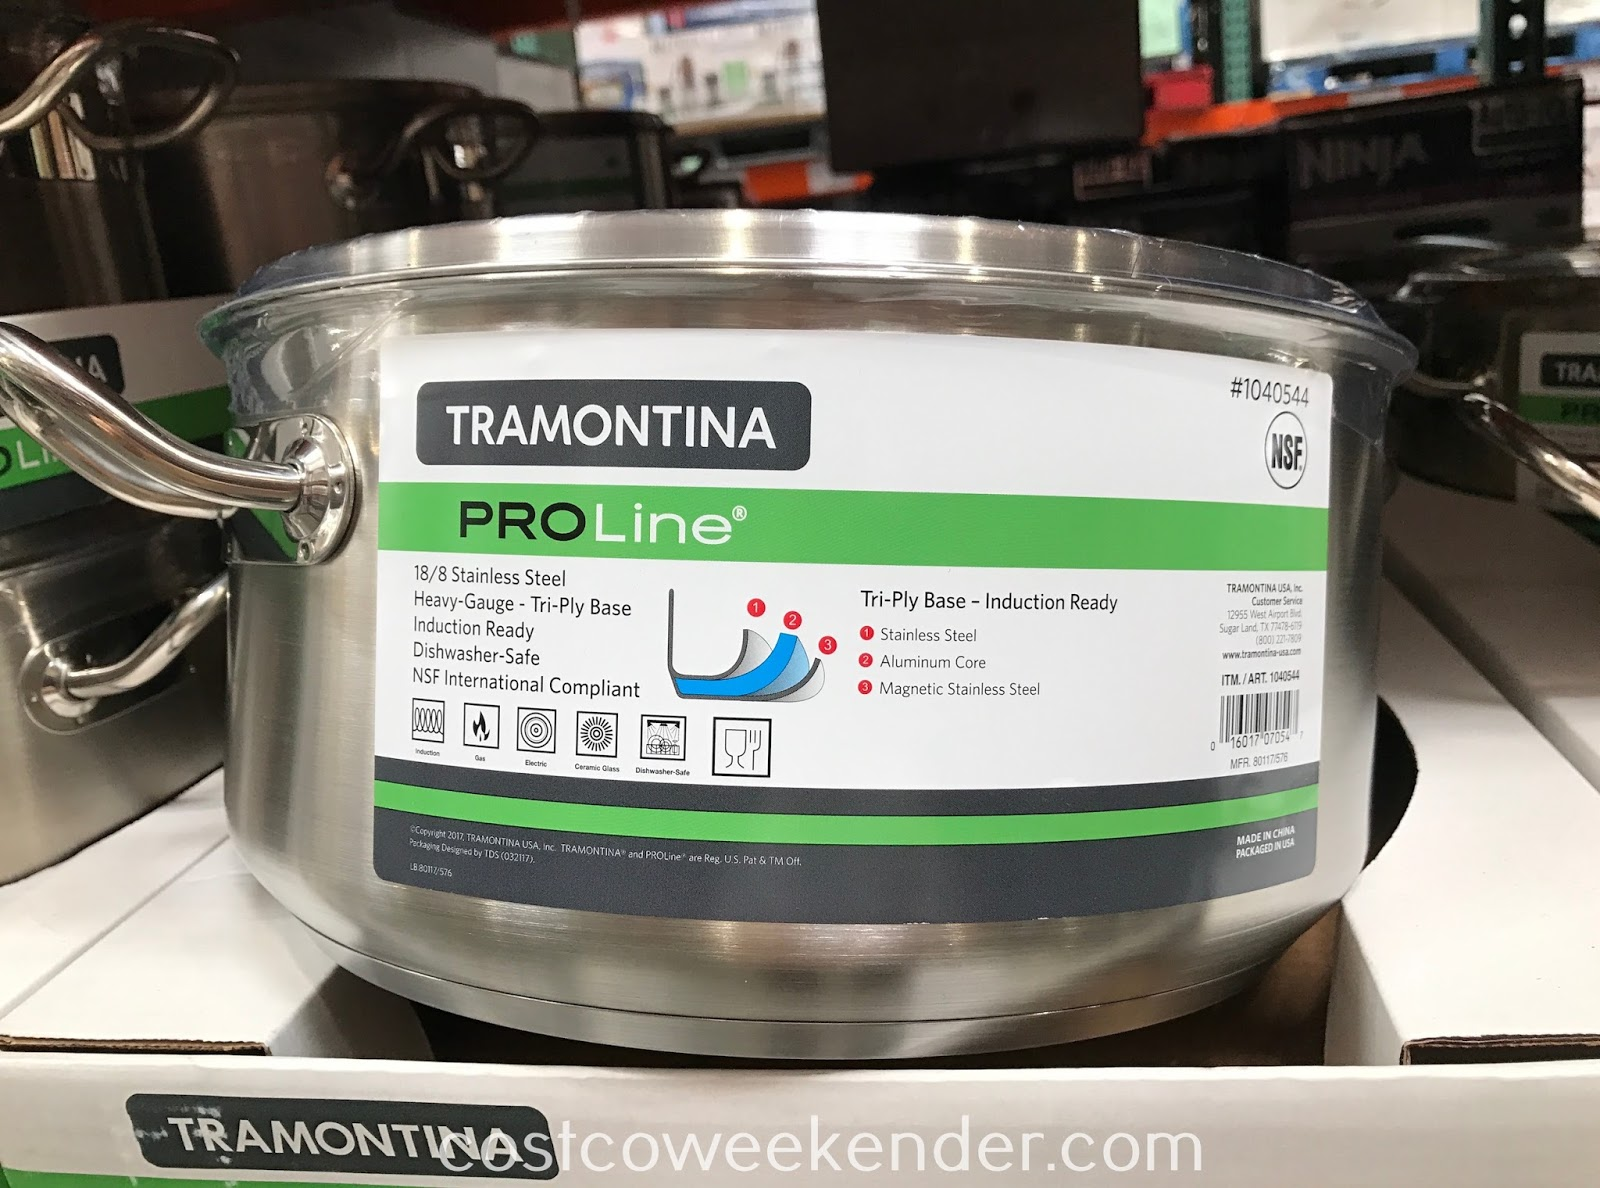 Make a healthy meal for the family with the Tramontina ProLine 9qt Dutch Oven